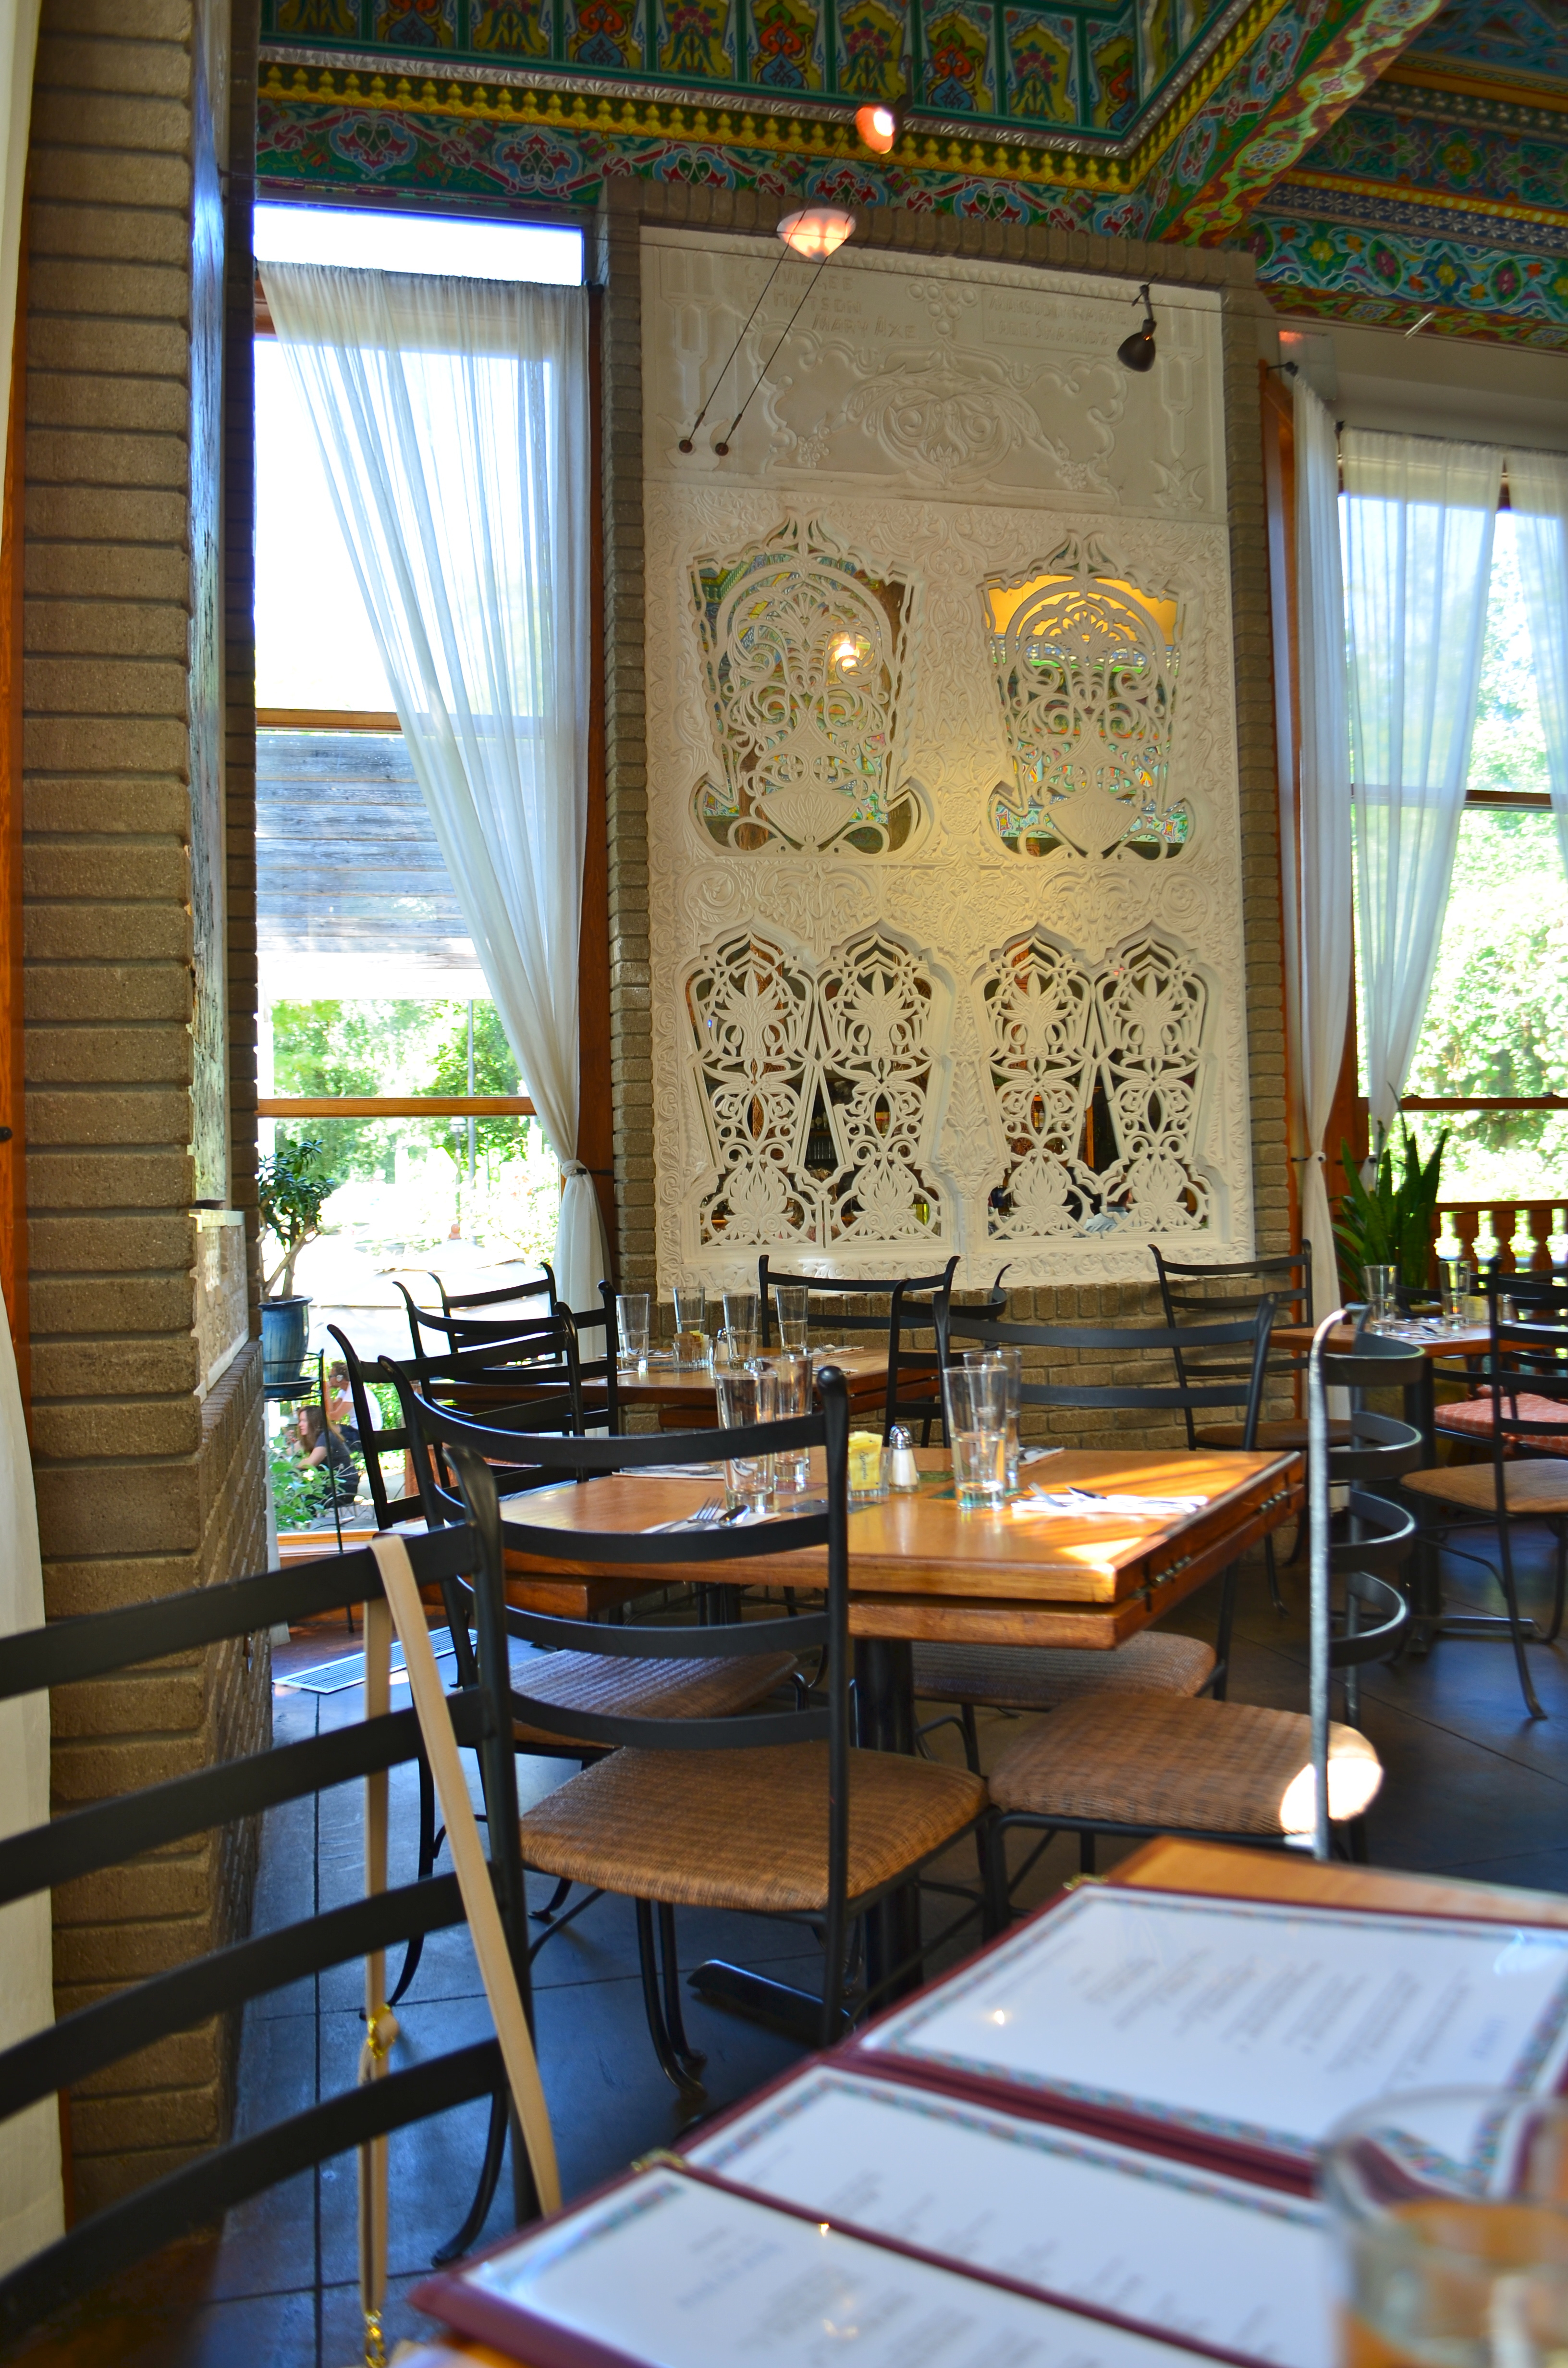 Boulder Dushanbe Teahouse - Bites 'n Brews on grain silo design, fusion design, tea room, winery design, family design, sidewalk design, asian design, irish design, international design, cast iron design, sauna design, southwestern design, hedge design, casino design, travel agency design, pavilion design, tea houses in new jersey, african design, construction design, japanese design,